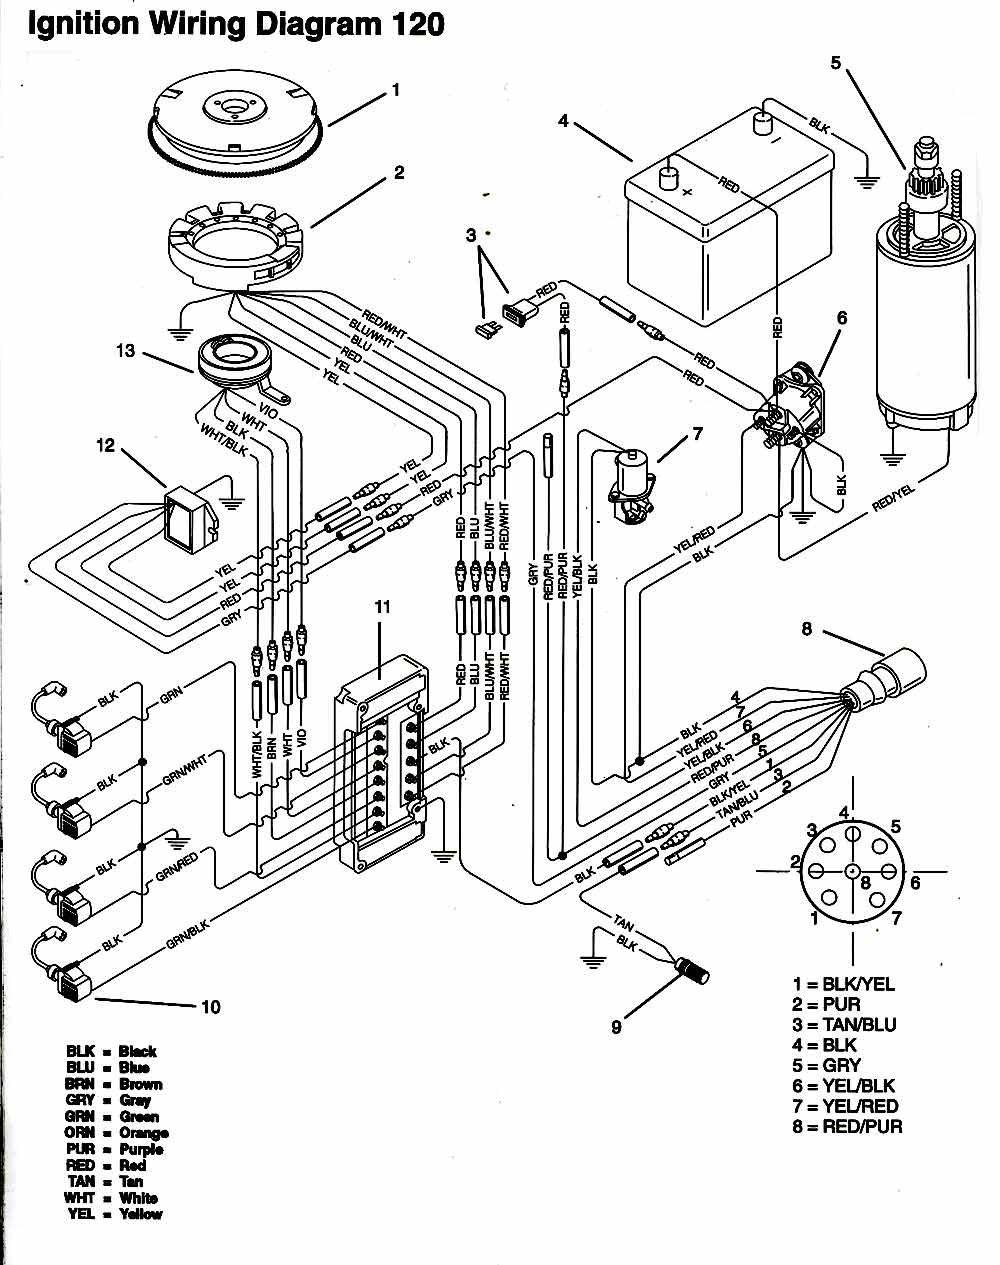 Fine Boiler Diagram Big Three Way Switch Guitar Solid Free Technical Service Bulletins Online One Humbucker One Volume Wiring Youthful Ibanez Srx Bass PinkDimarzio Push Pull Honda Outboard Gauge Wiring Diagram. Honda. Diagram Schematic ..